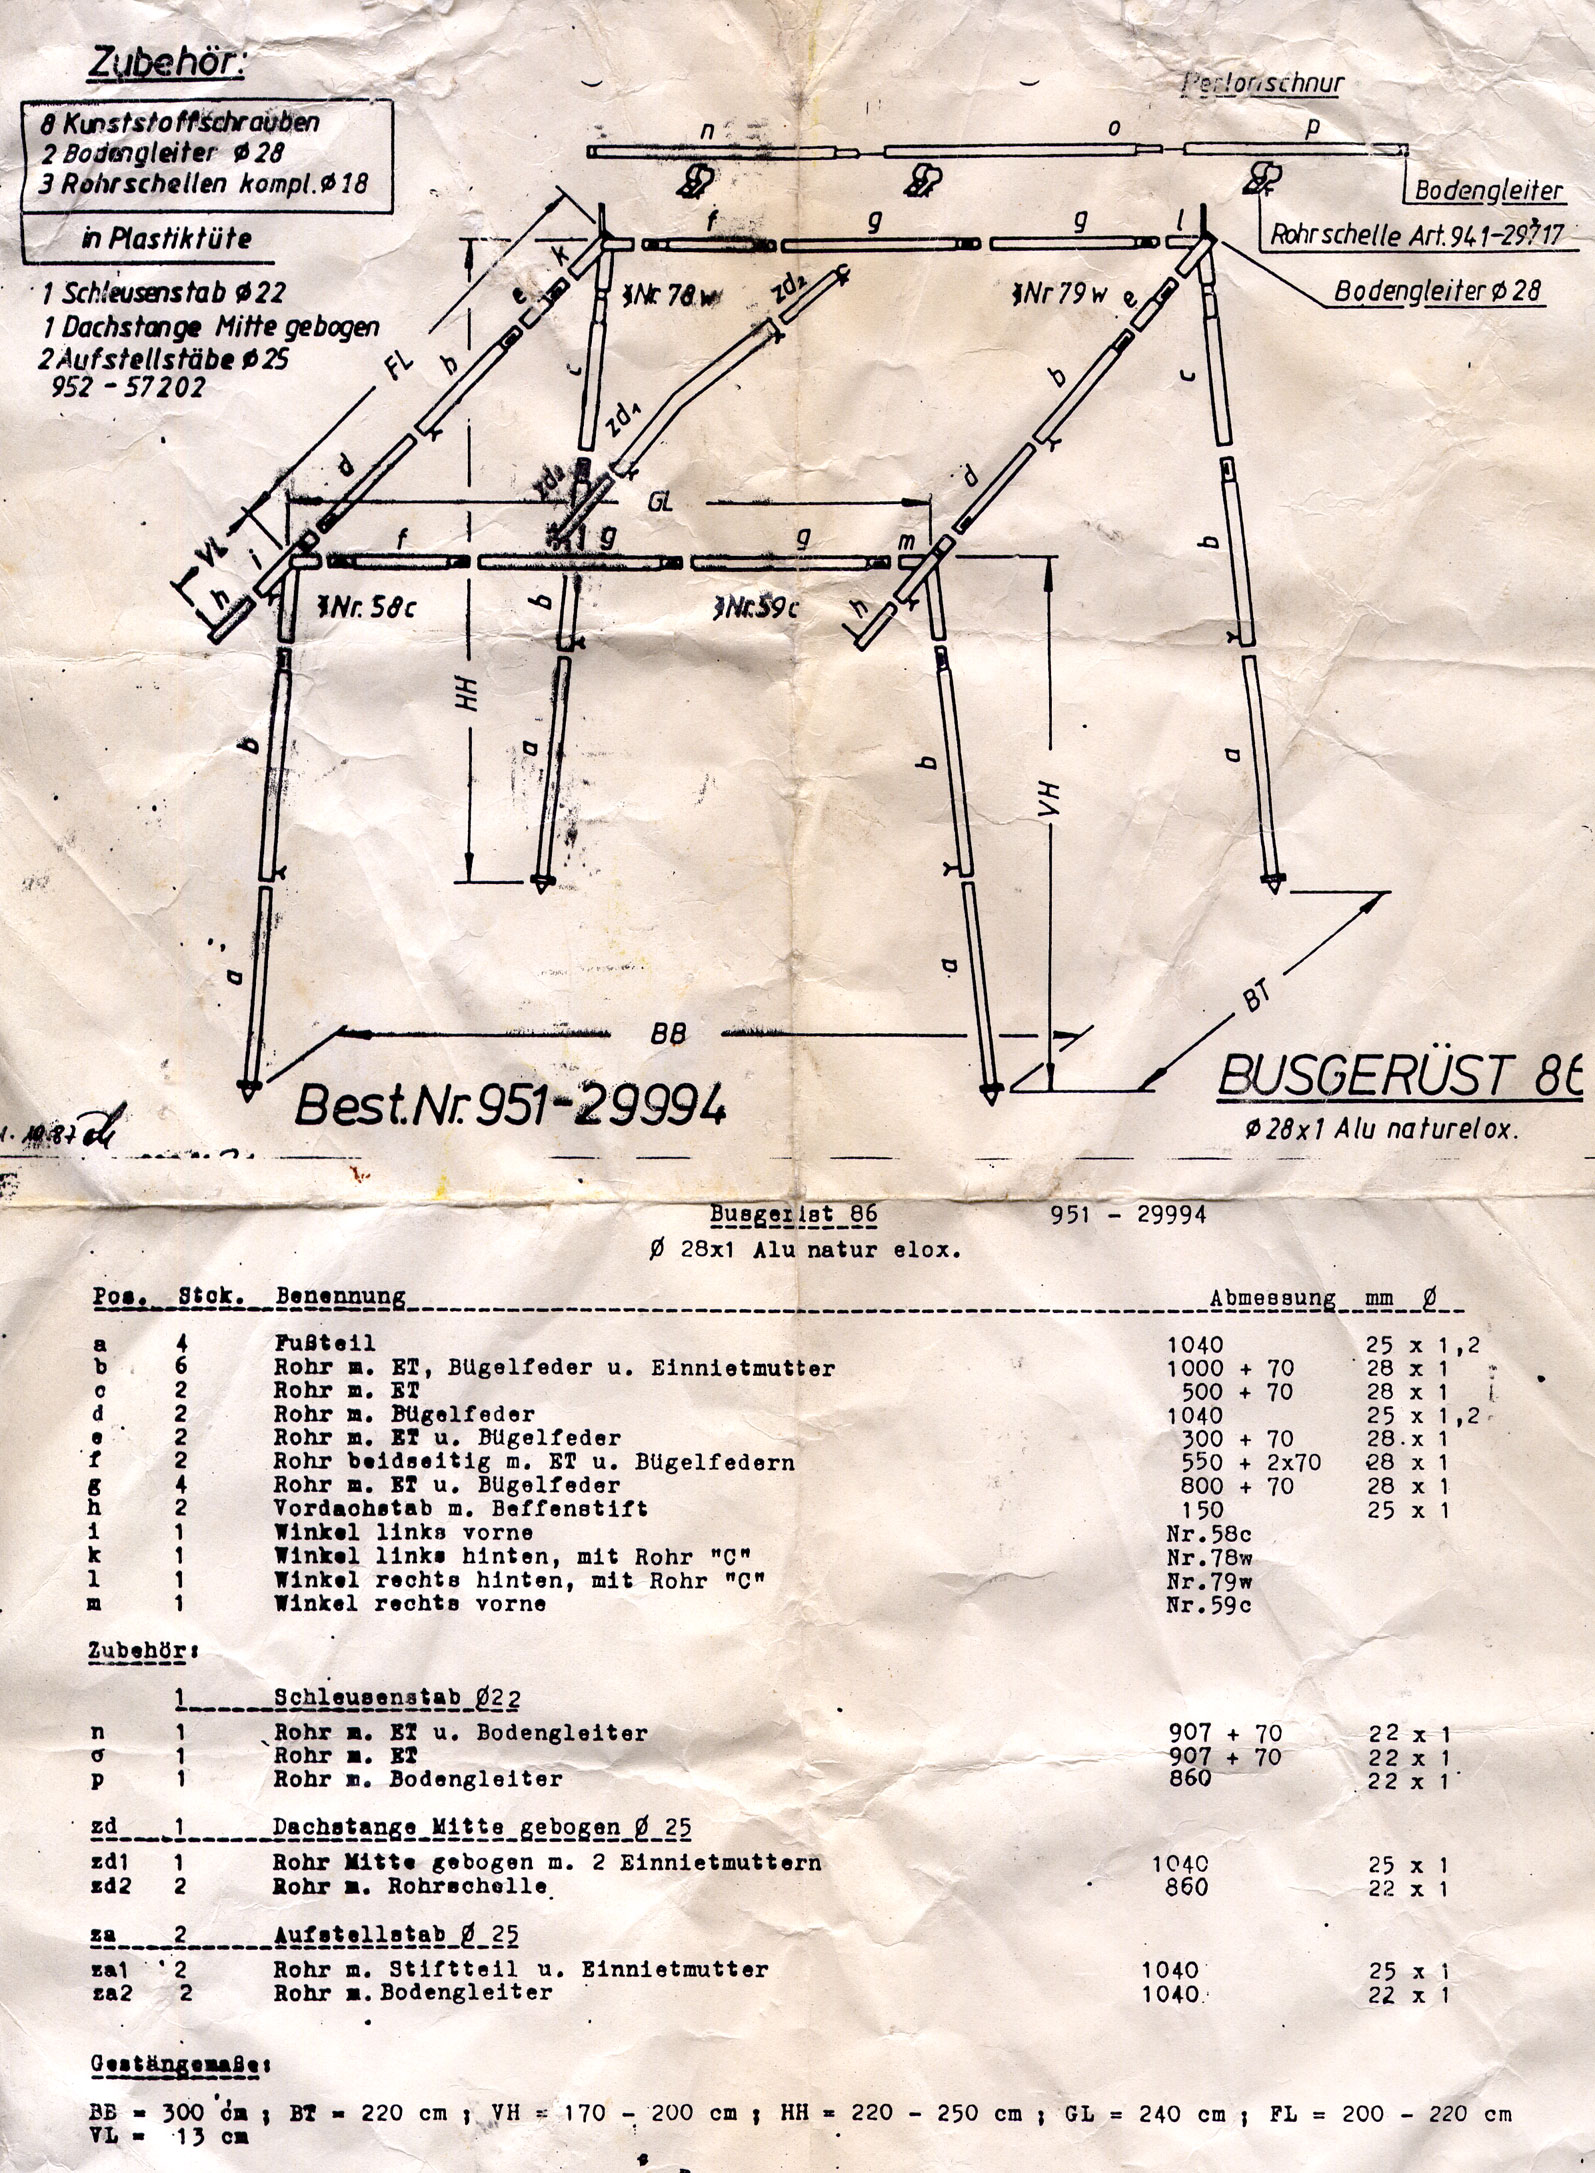 Unled Page on painless wiring diagram, grand wagoneer wiring diagram, vanagon starter wiring, vanagon charging system, gs400 wiring diagram, model wiring diagram, light switch wiring diagram, vanagon horn wiring, type 3 wiring diagram, celica wiring diagram, vanagon dash wiring, eurovan wiring diagram, 4x4 wiring diagram, vw wiring diagram, vanagon firing order, bug wiring diagram, van wiring diagram, trans am wiring diagram, land cruiser wiring diagram, vanagon cooling system,